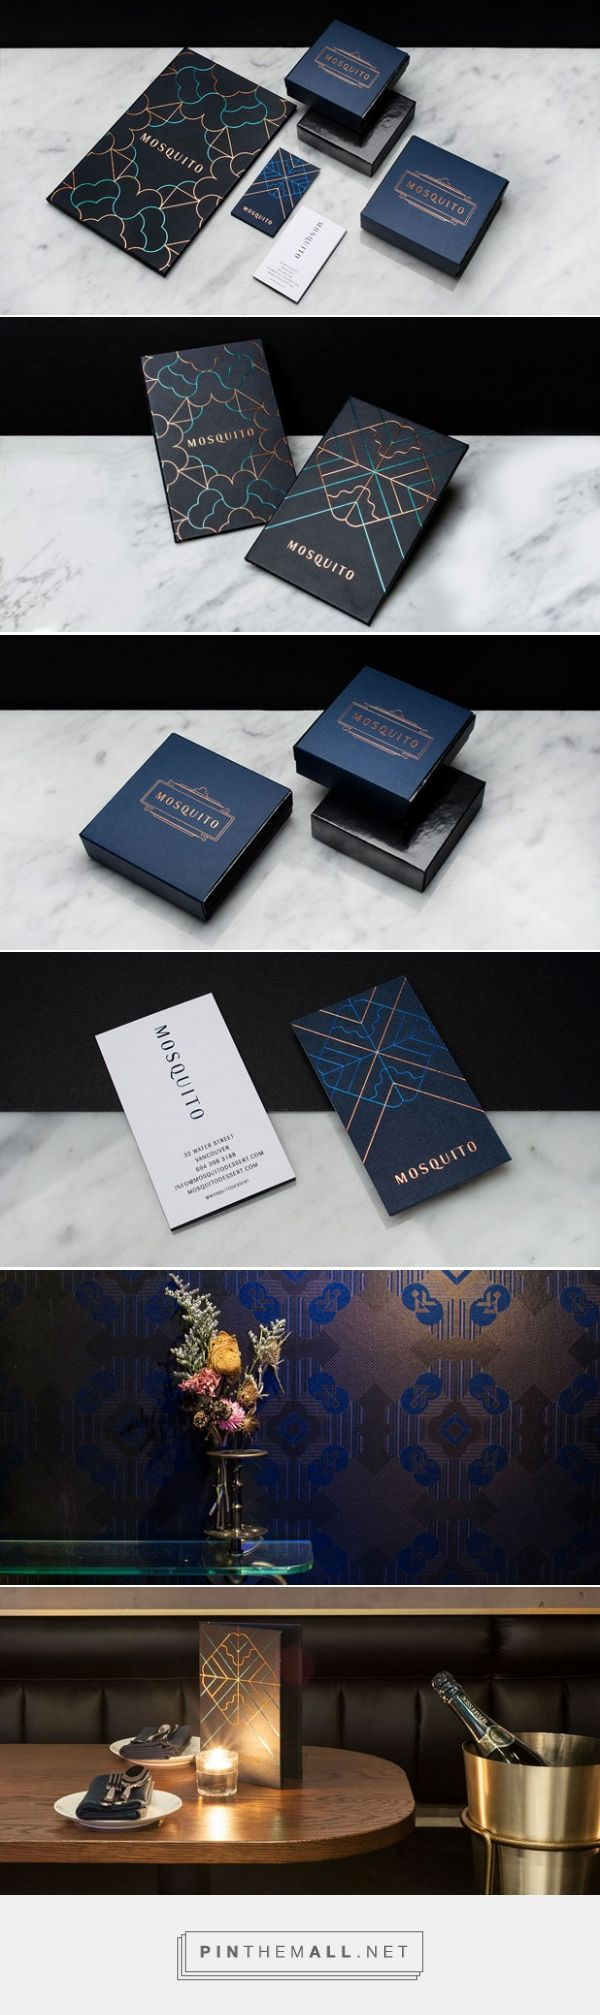 61 best exclusive business card images on pinterest business mosquito bar branding by glasfurd walker reheart Gallery